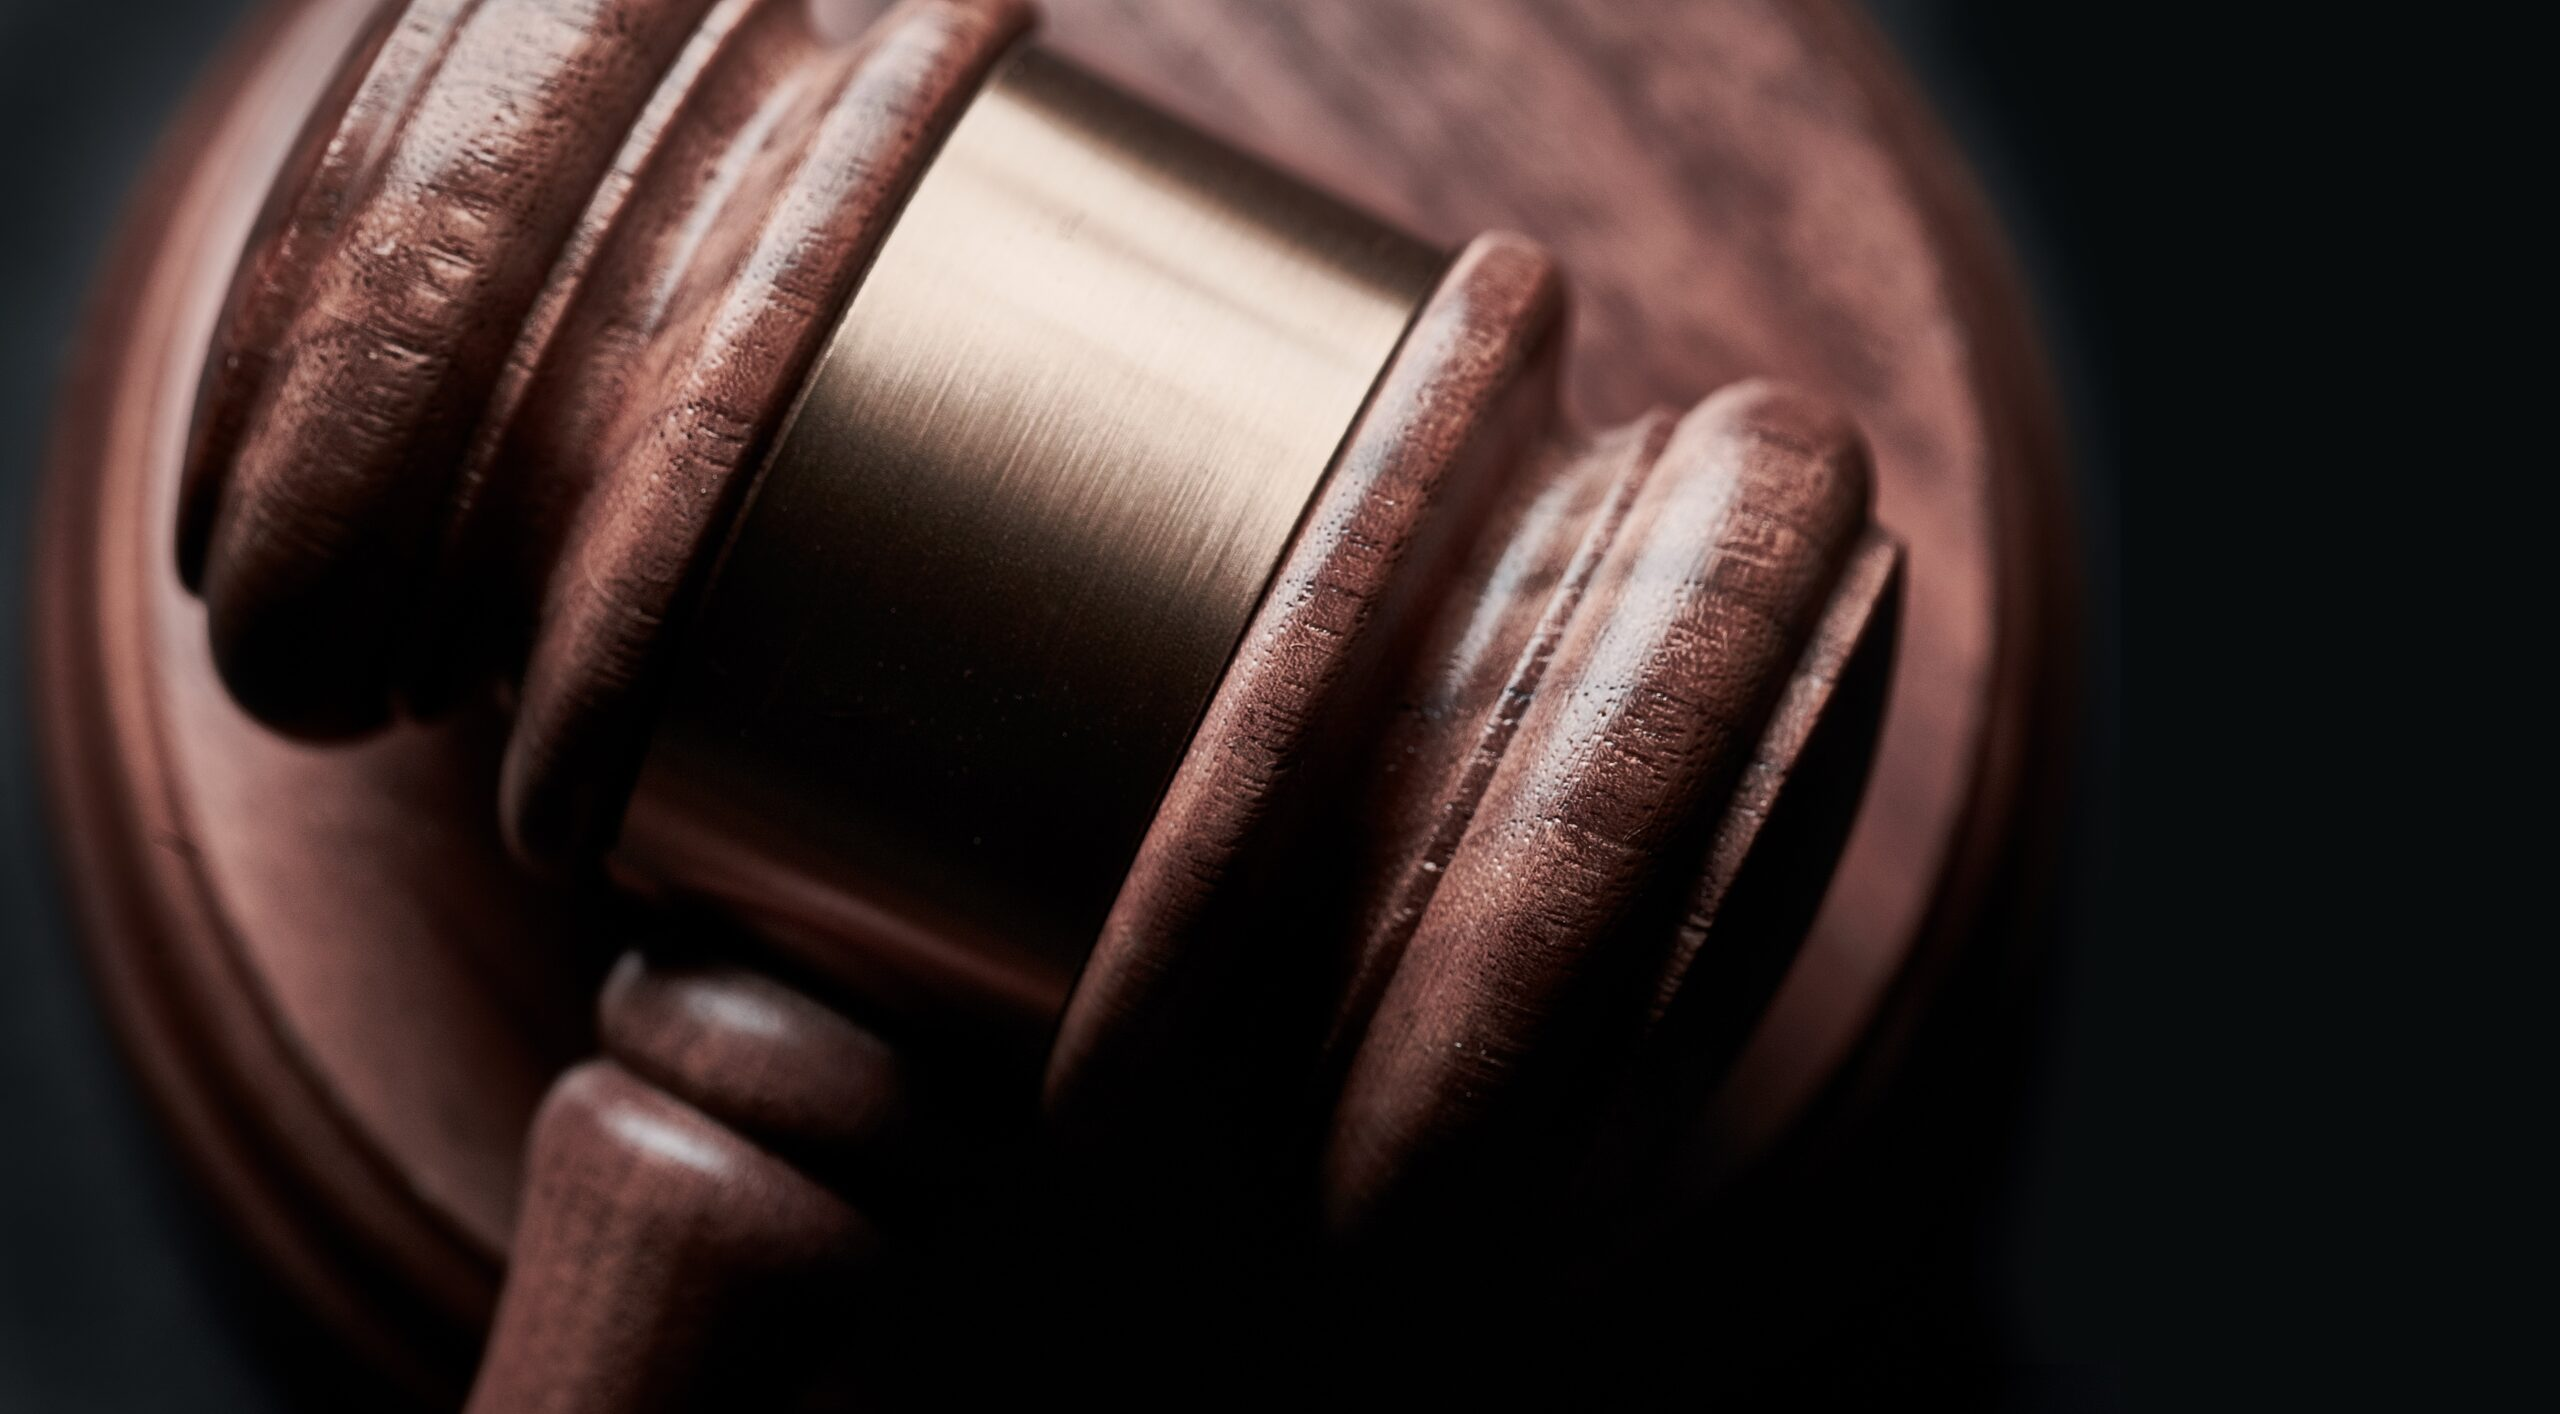 Gavel on black background with copy space. Concept for legal, lawyer, judge, law, auction and attorney. Image credit: Bill Oxford, Unsplash